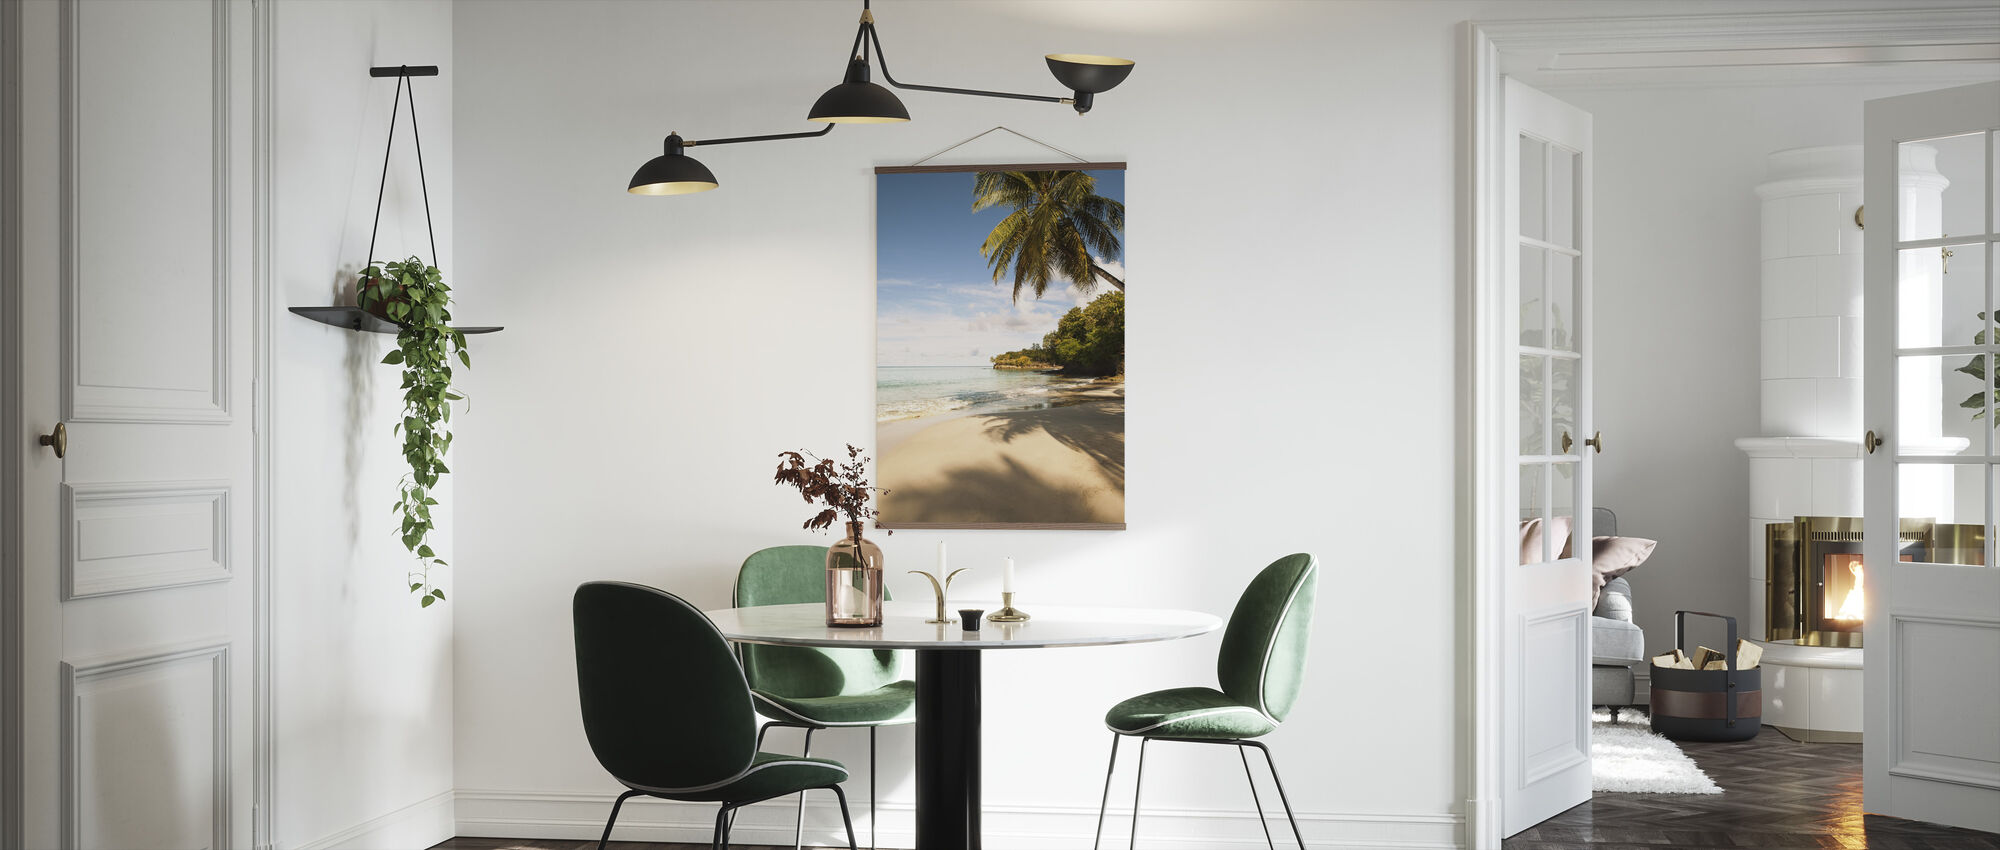 Beach in Saint Lucia, Carribean - Poster - Kitchen